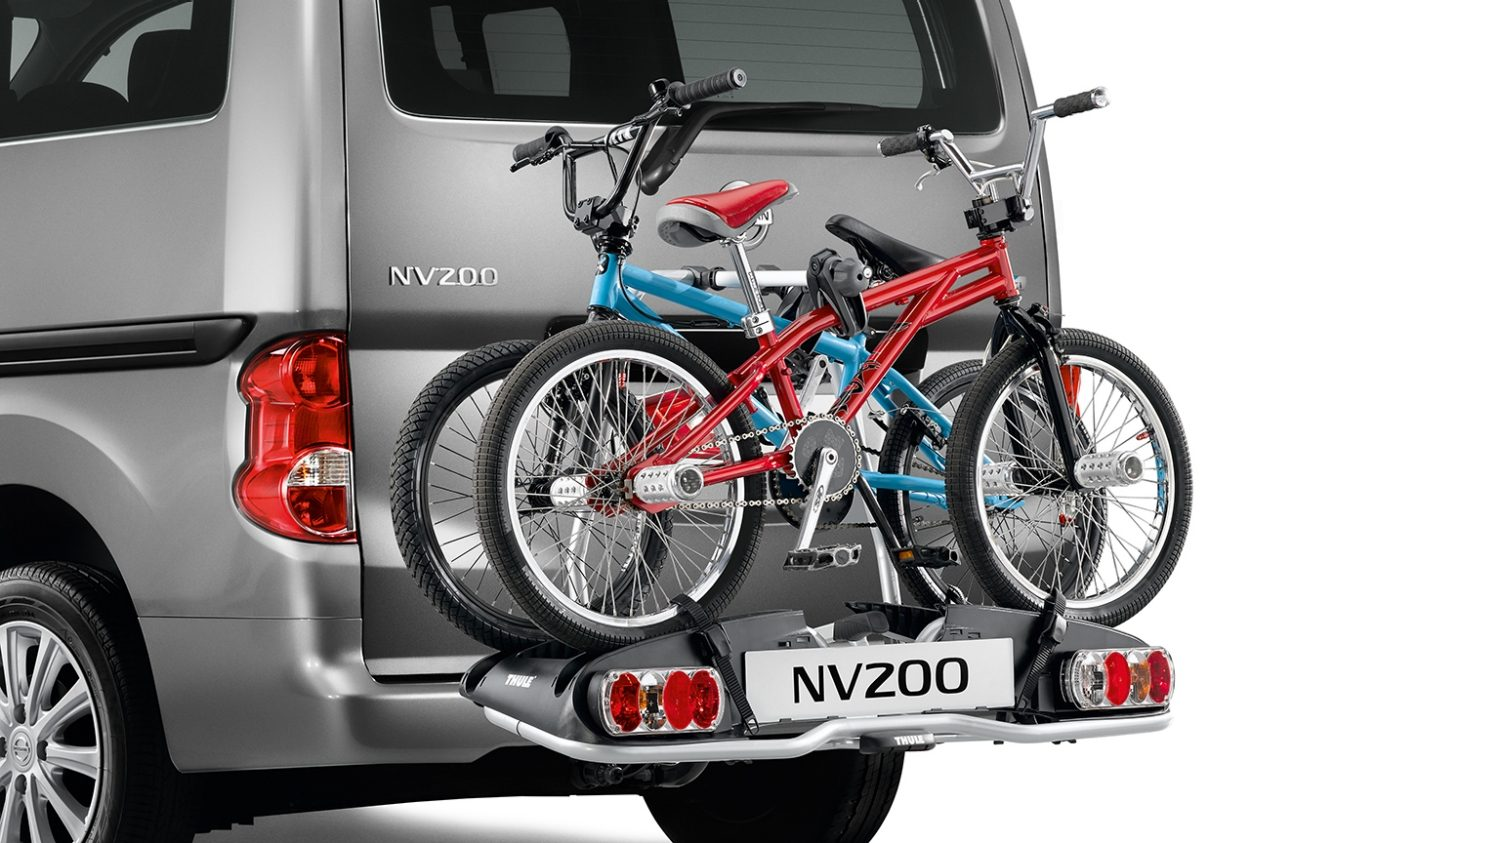 Nissan NV200 - Transportation - Bike carrier towbar mounted 13 pins 2 bikes - Foldable - Euroride